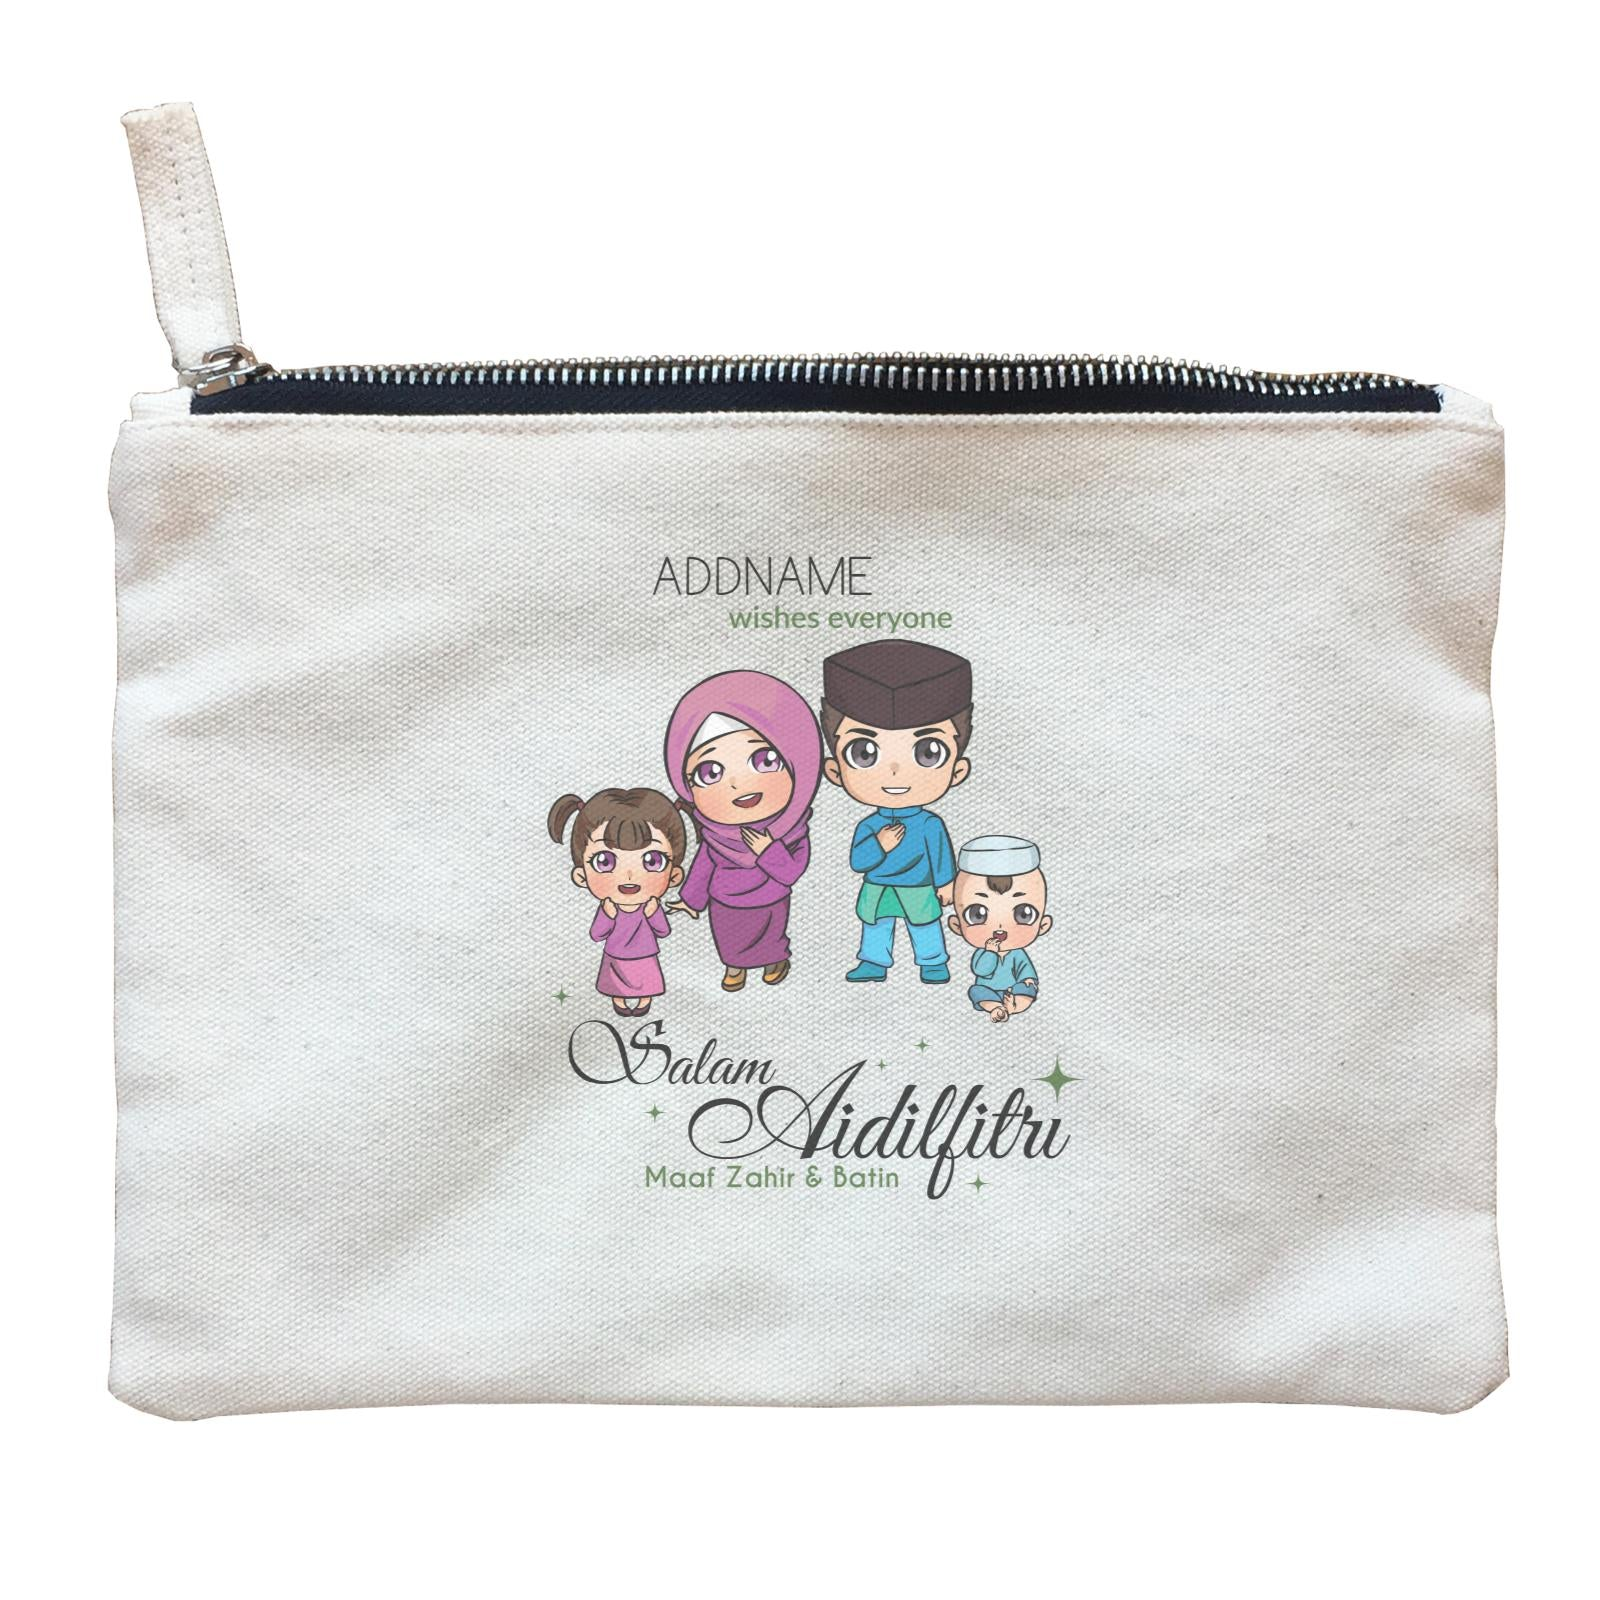 Raya Chibi Family Girl And Baby Boy Addname Wishes Everyone Salam Aidilfitri Maaf Zahir & Batin Zipper Pouch